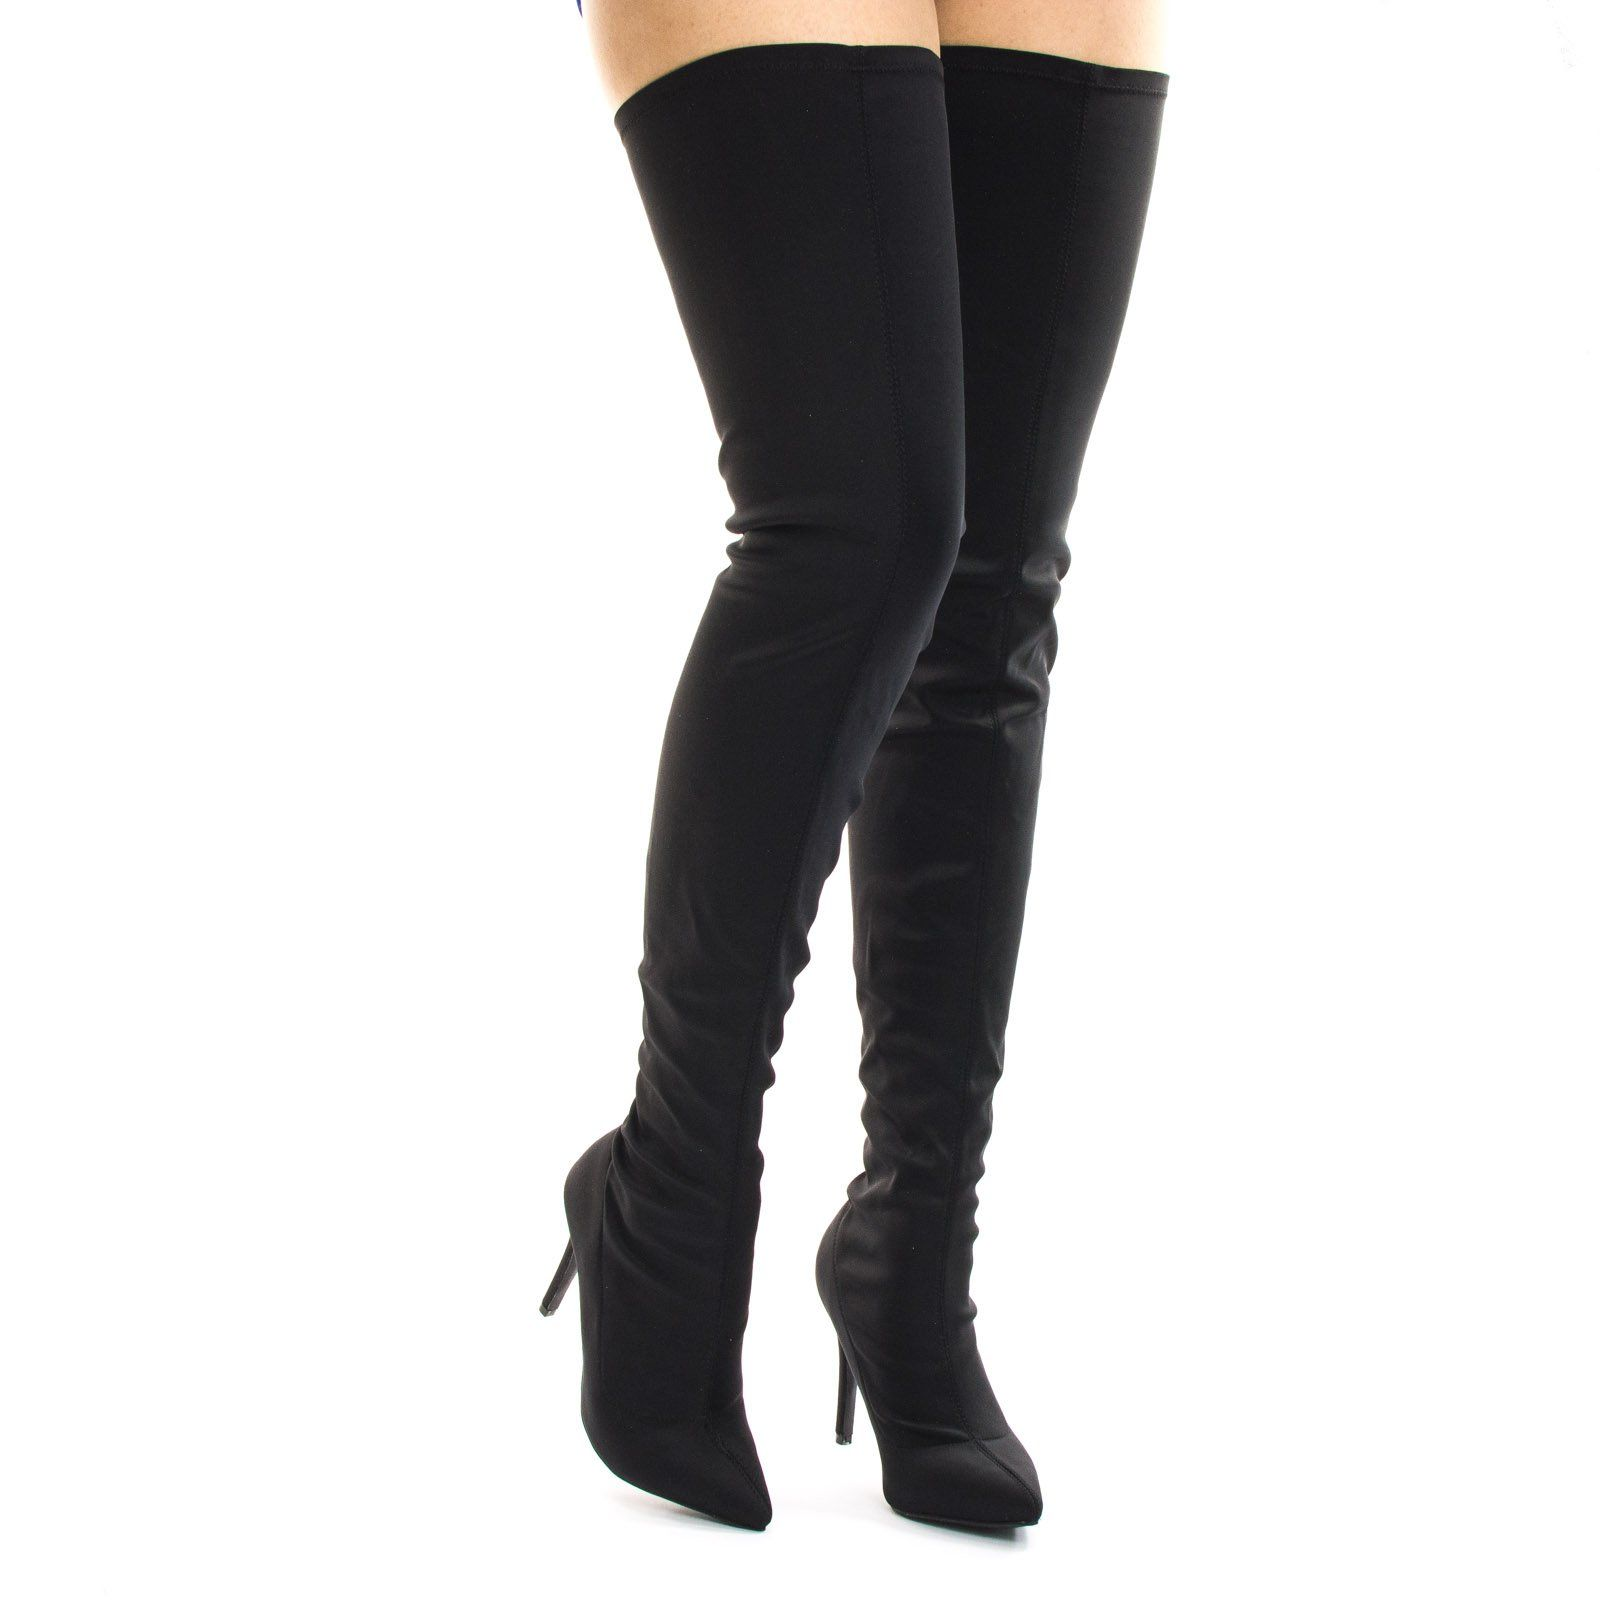 6ce789b8c34 Akira203 Black High Heel Over Knee Boots, Elastic Thigh High Pointed ...